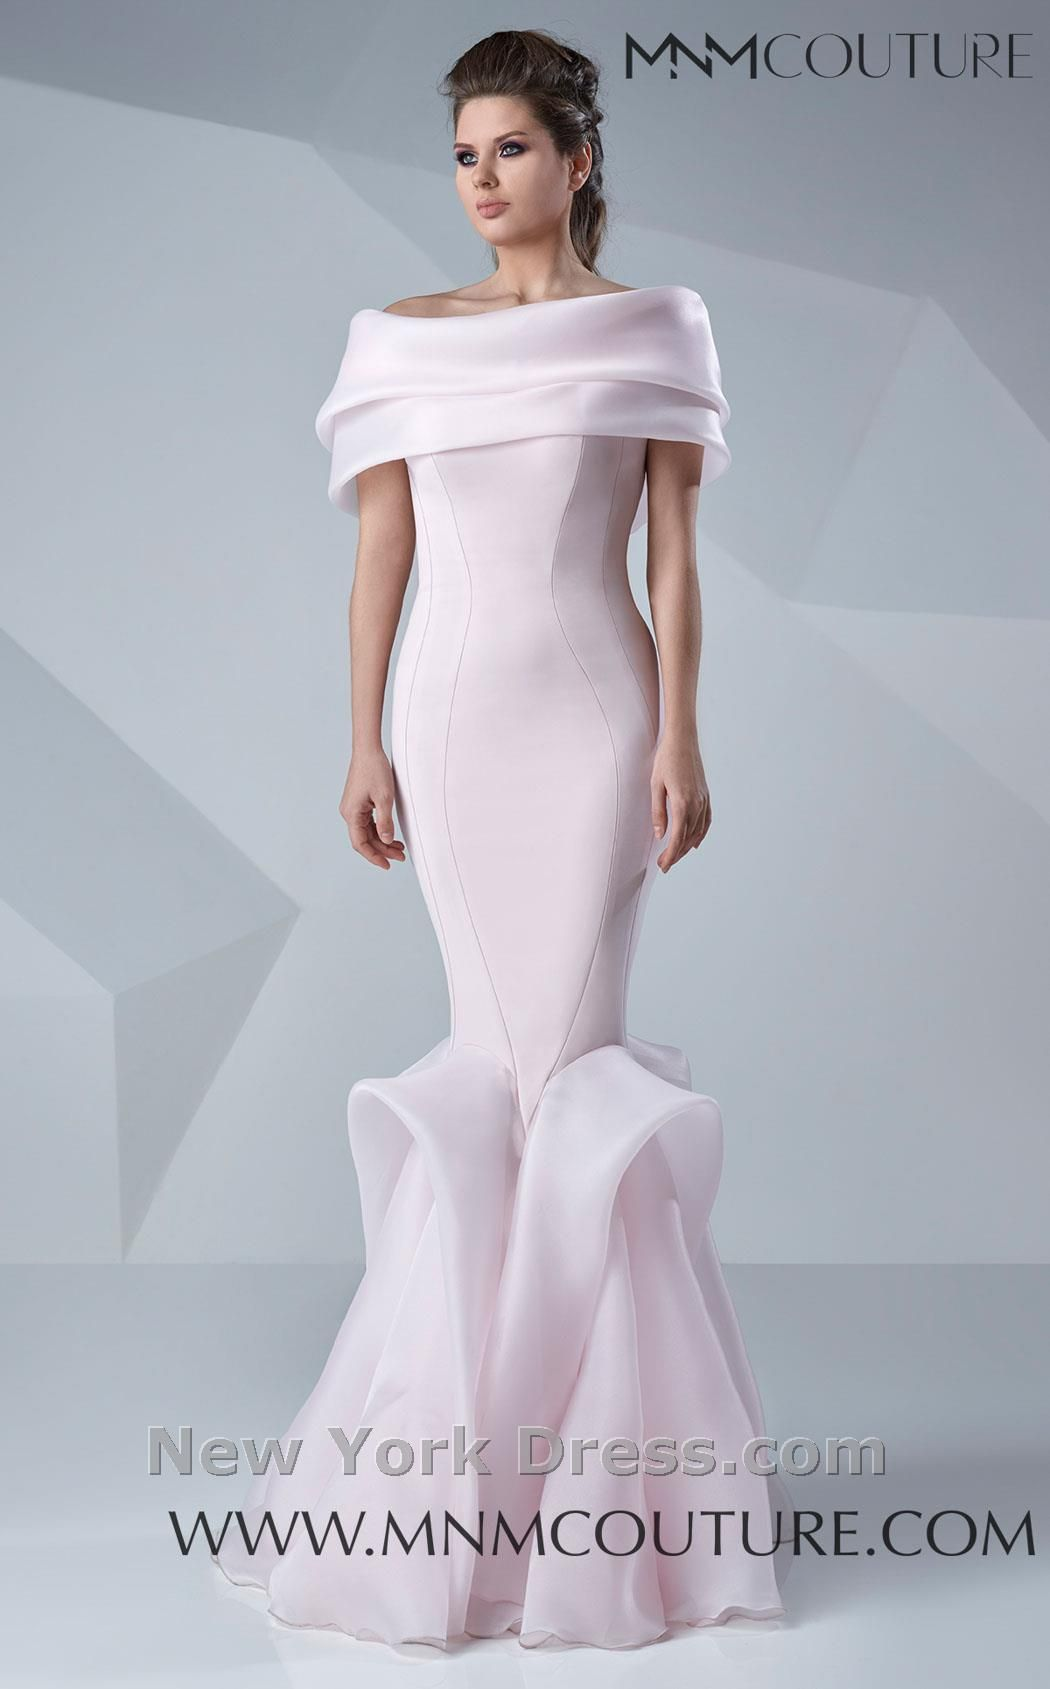 Mnm couture dress g couture bodice and gowns